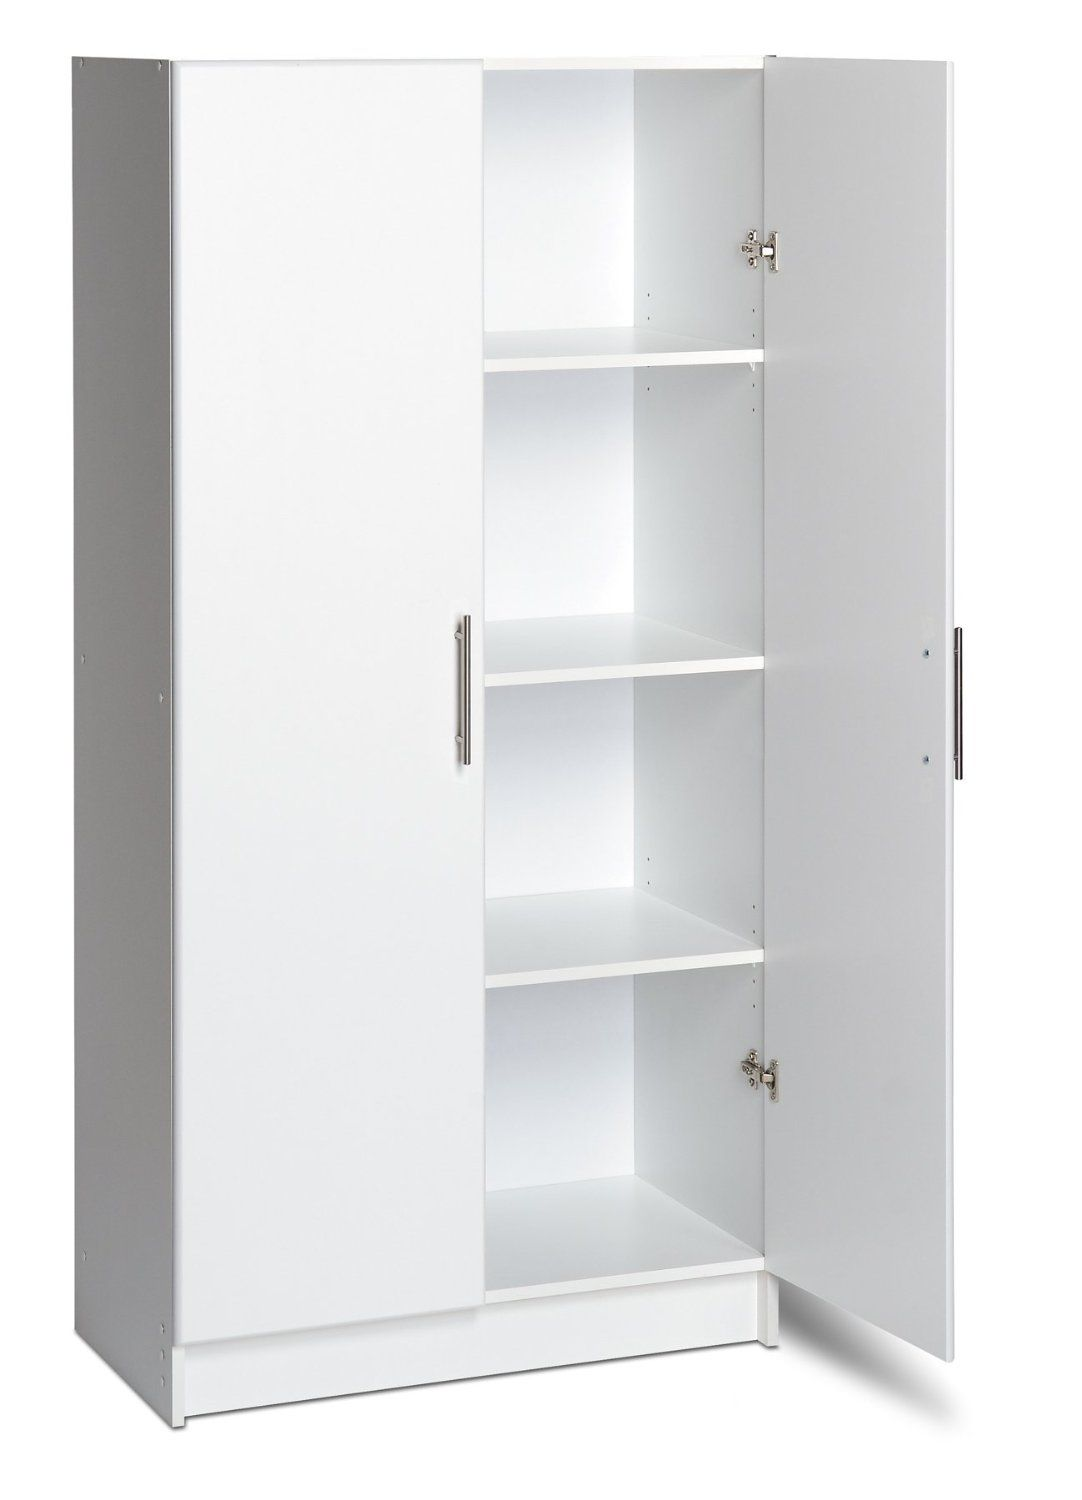 Prepac Storage Cabinet Kitchen Pantry Garage School Room Home Office Shelf  White